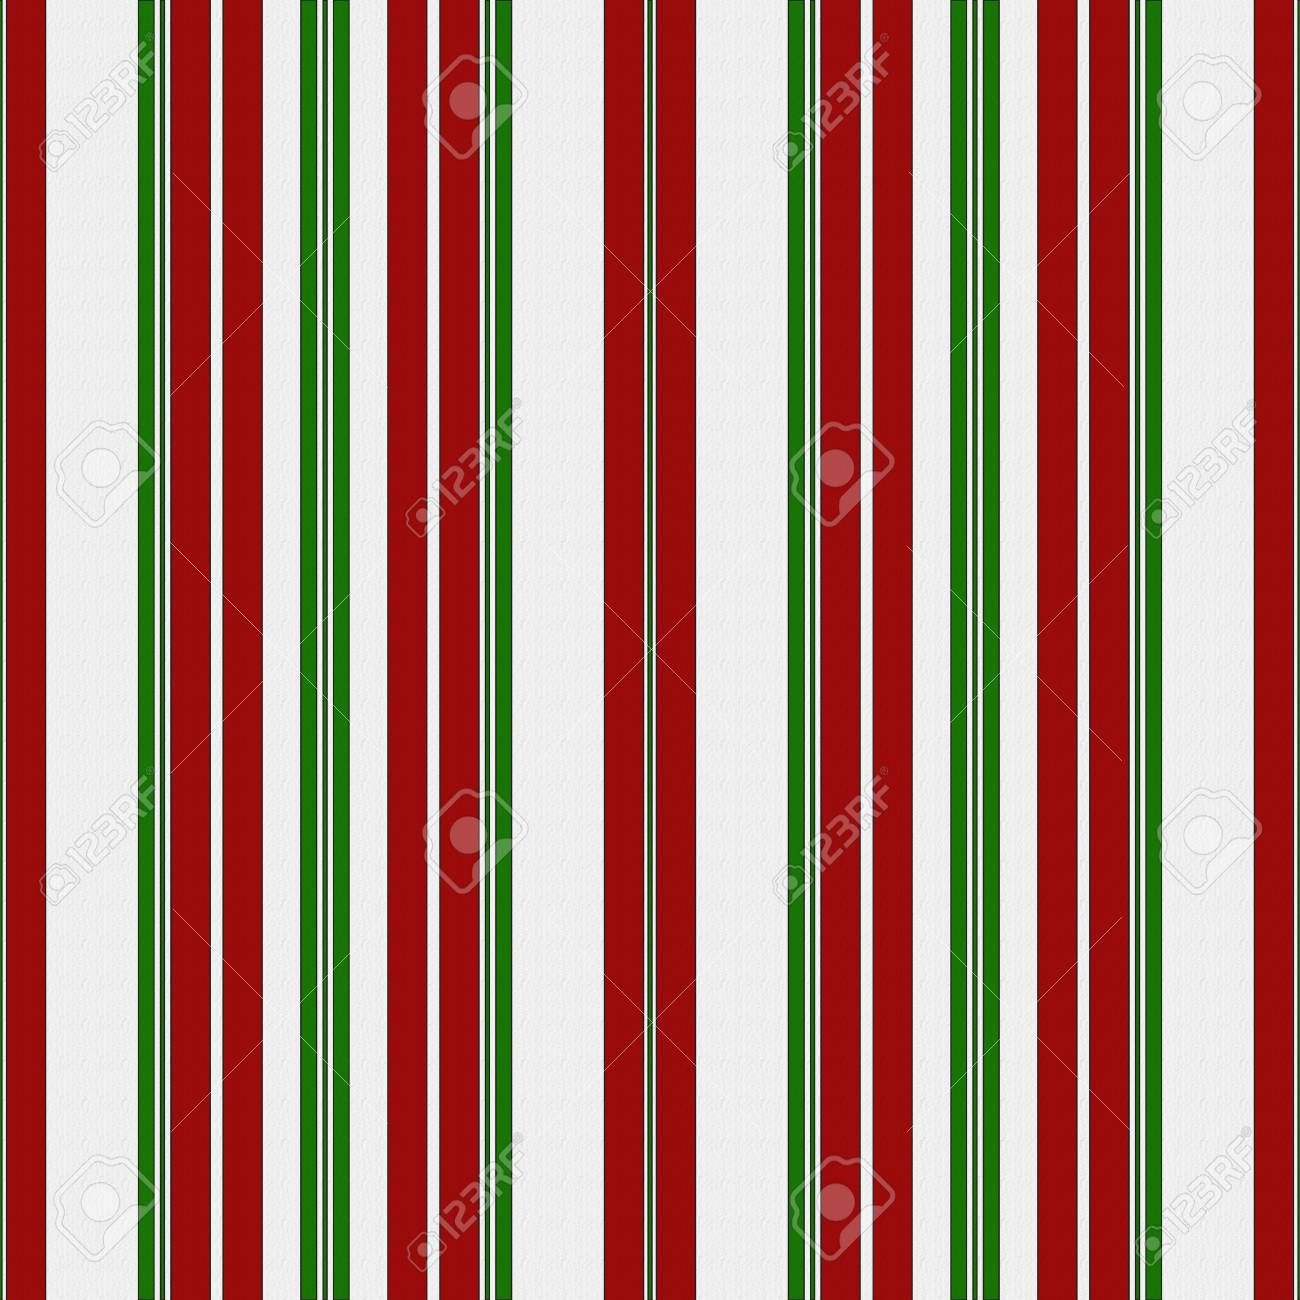 Red Green And White Striped Fabric Background Stock Photo Picture